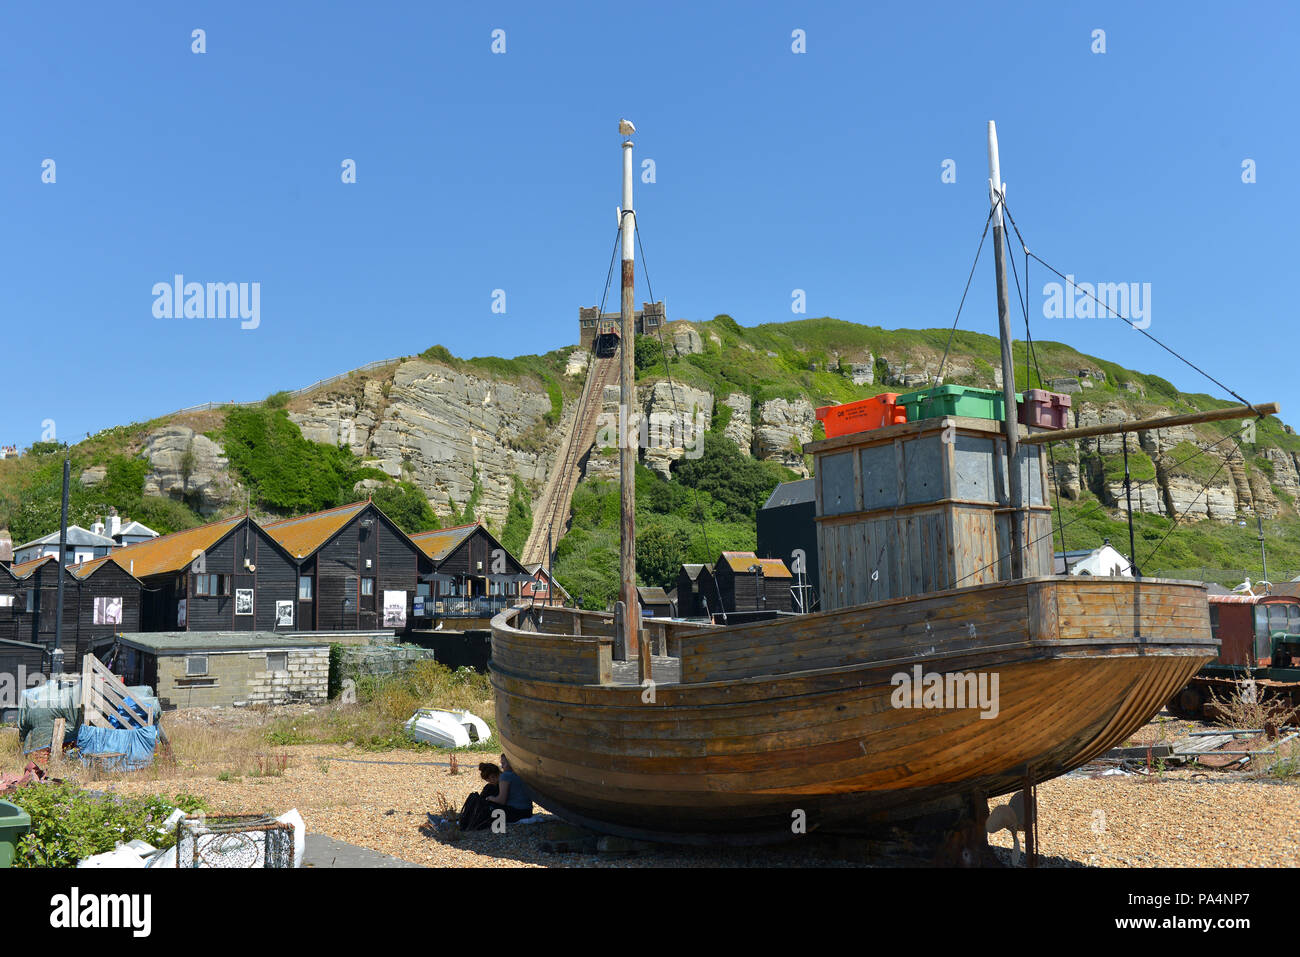 Fishing boats and net huts on the Stade, Hastings Old Town beach, with East Hill Cliff railway. - Stock Image